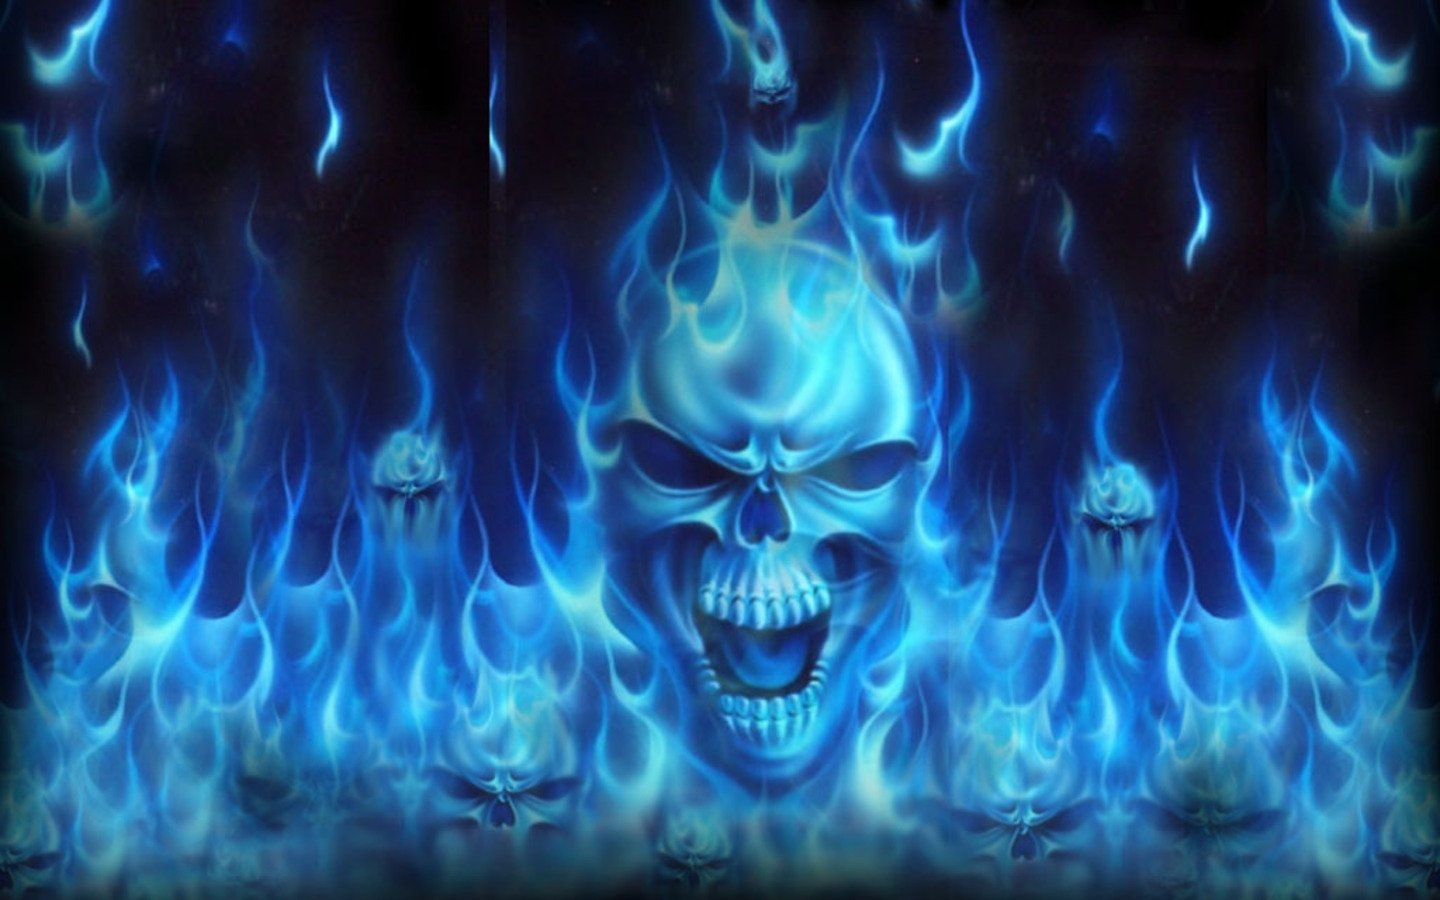 SKULLS - dark abstract flames blue